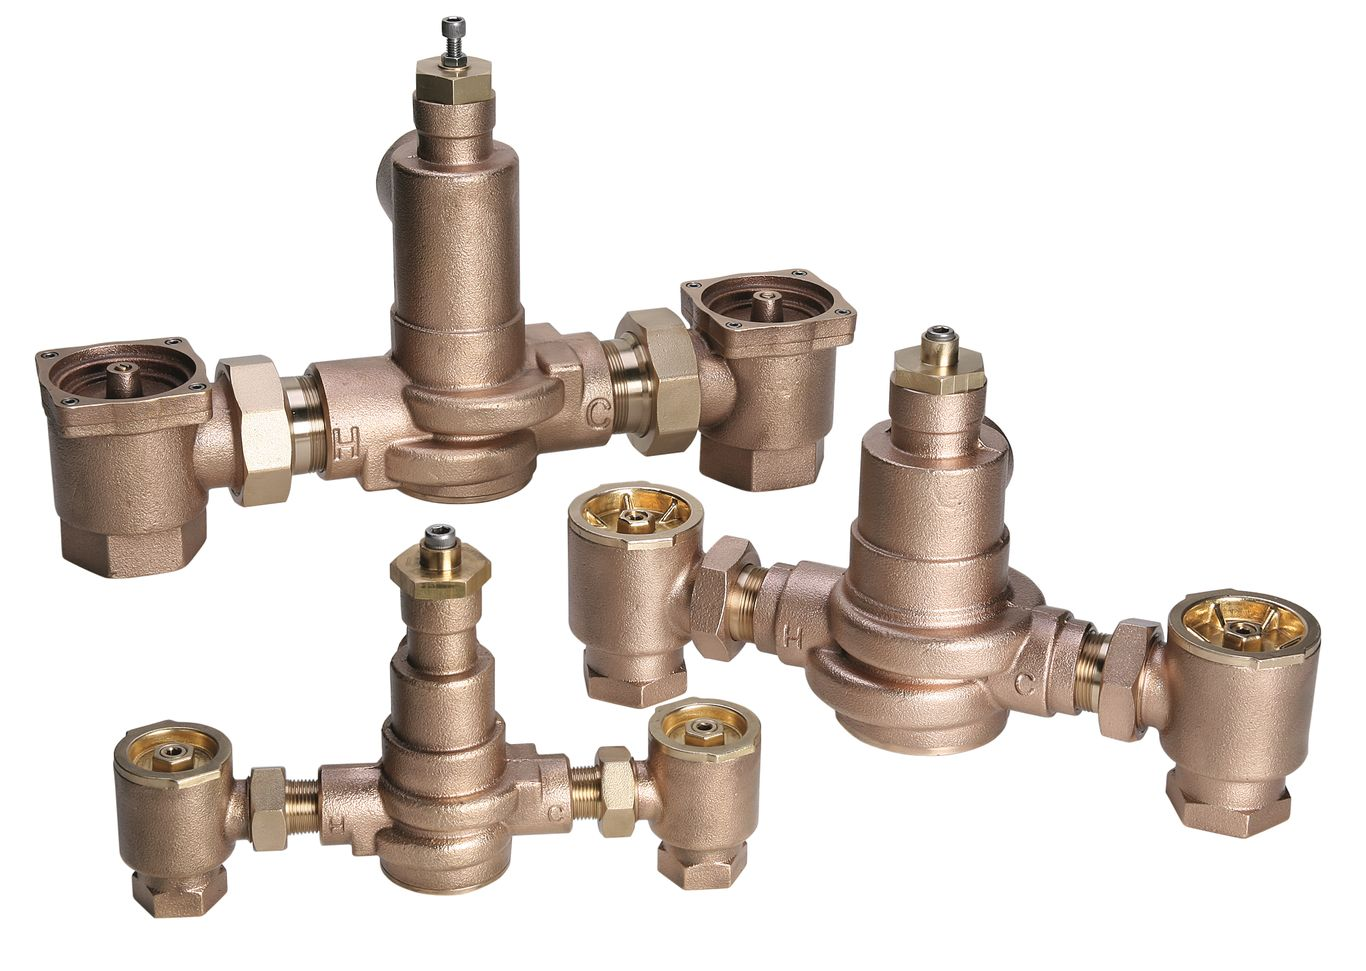 hight resolution of hydroguard xp lead free series lfmm430 master tempering valves